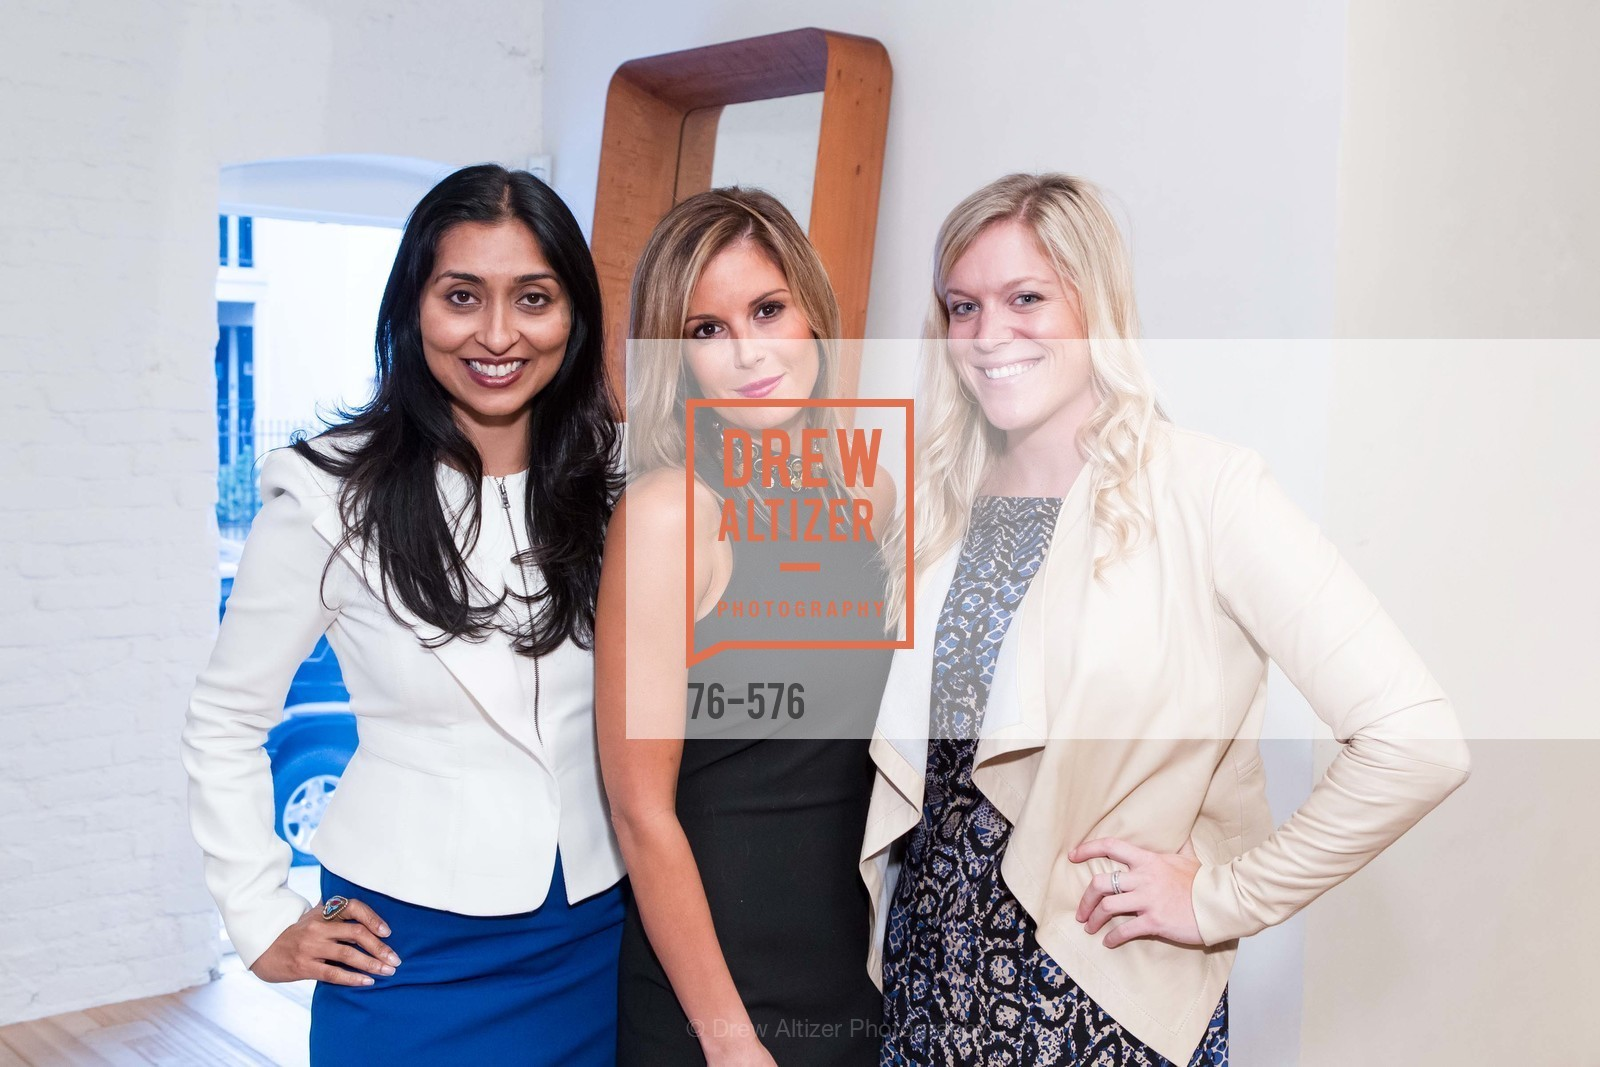 Smrithi Prabhu, Tara Loller, Merritt Fog, SF FALL ANTIQUES SHOW Designer's Circle Cocktail Party at HEWN, US, September 23rd, 2014,Drew Altizer, Drew Altizer Photography, full-service agency, private events, San Francisco photographer, photographer california